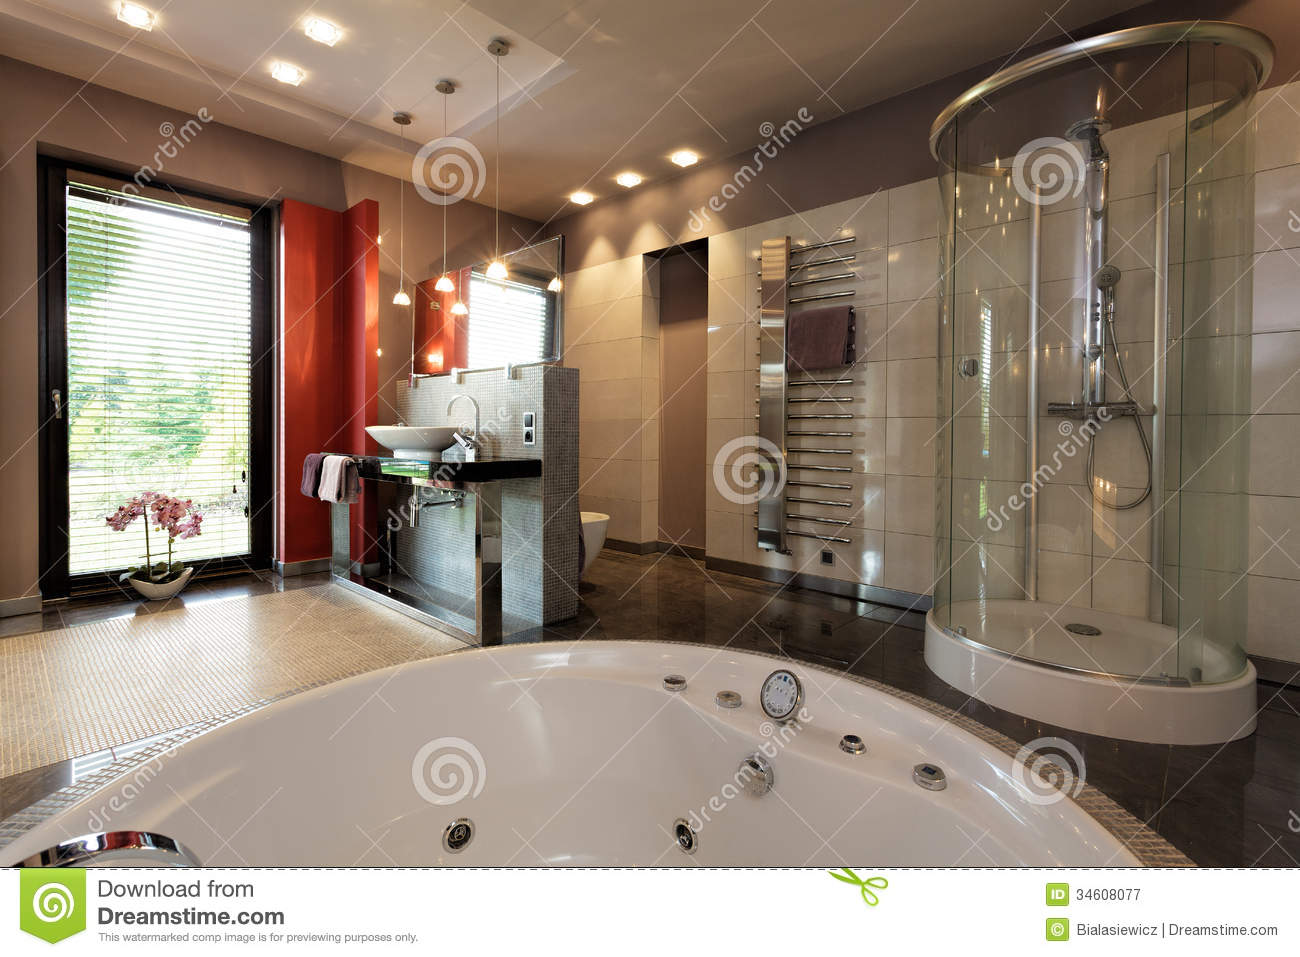 Modern master bathroom plan - Luxury Bathroom With Bath And Shower Royalty Free Stock Photography